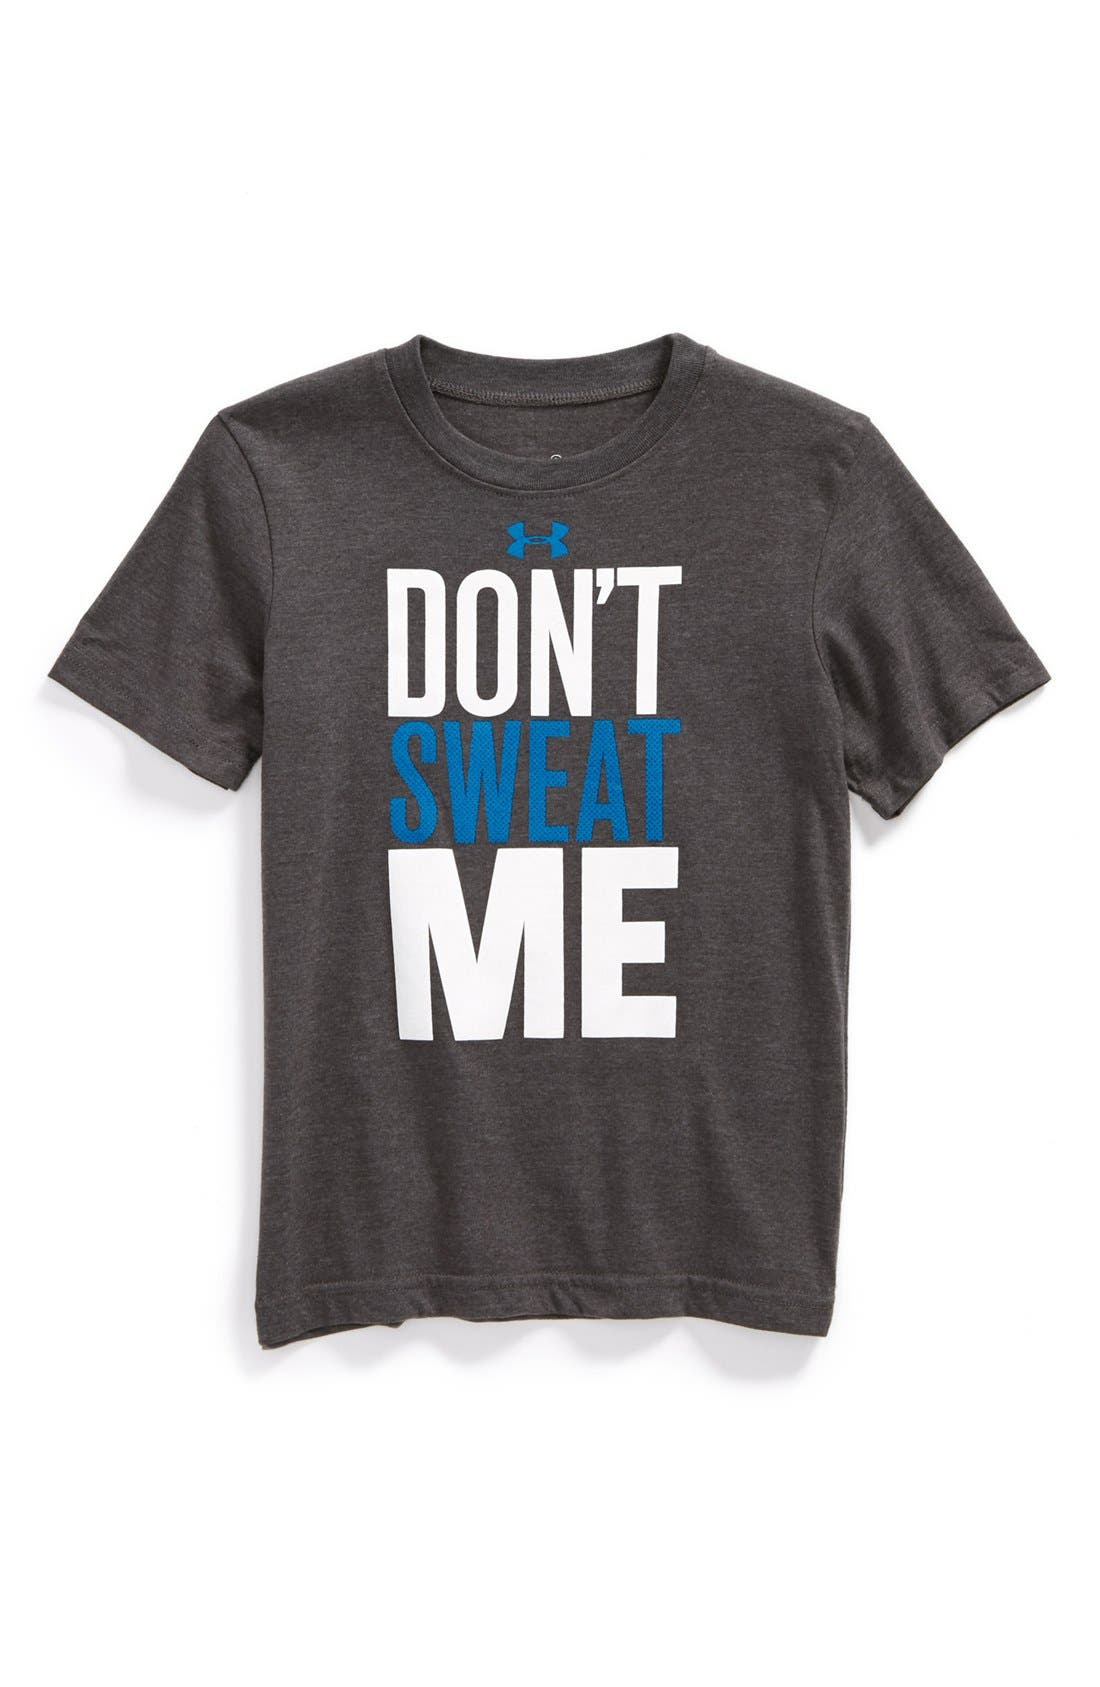 Alternate Image 1 Selected - Under Armour 'Don't Sweat Me' T-Shirt (Little Boys)